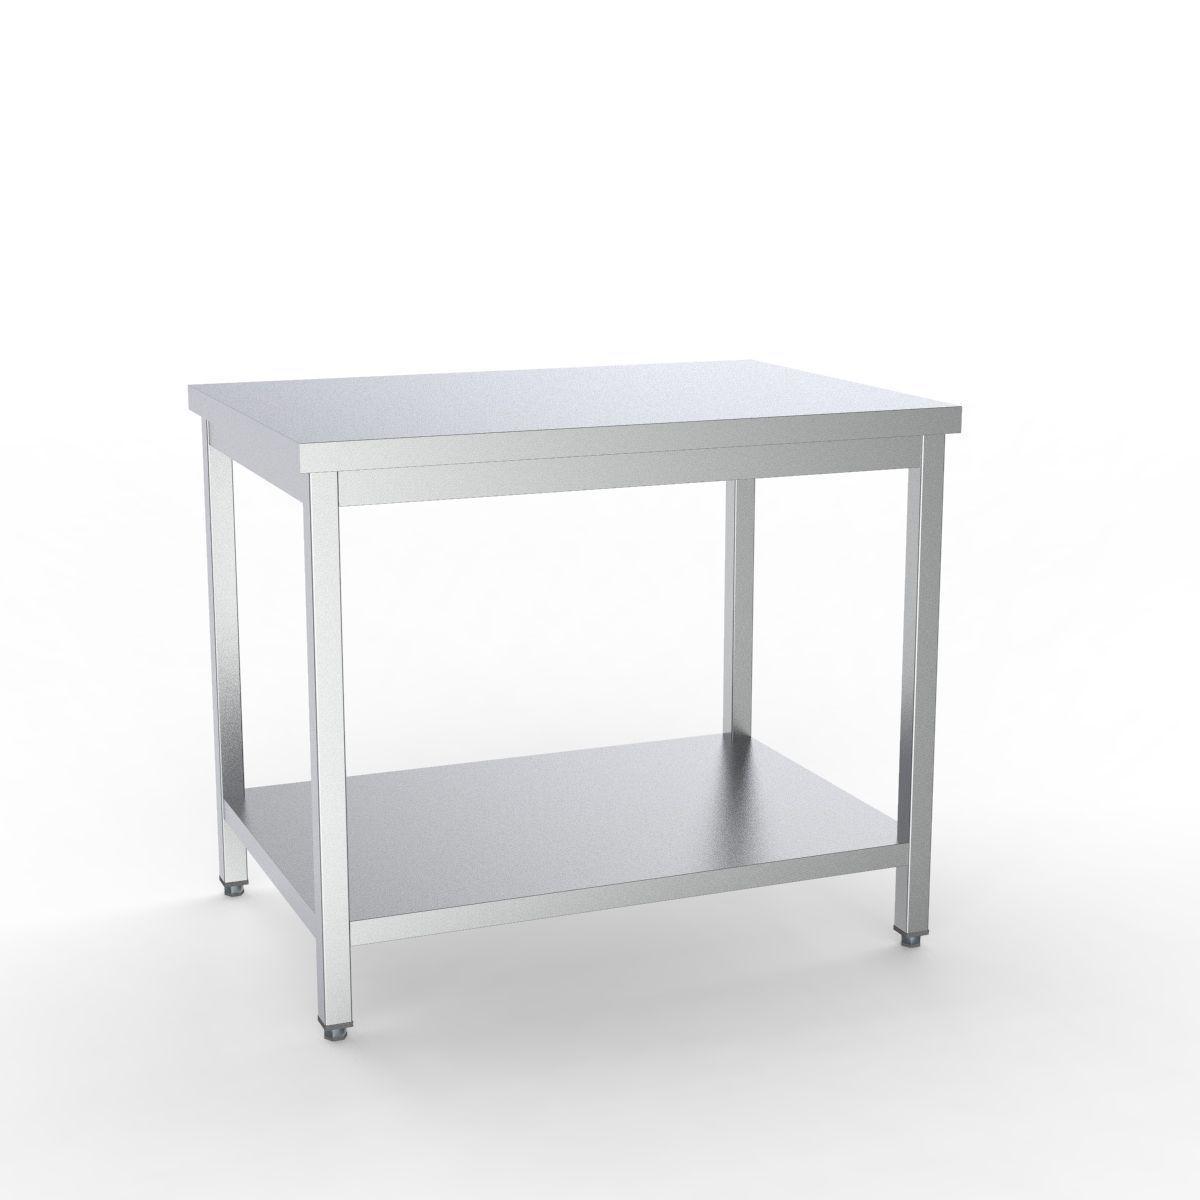 Combisteel Full 430 Stainless Steel 600 Line Worktable With Shelf  - 7333.0075